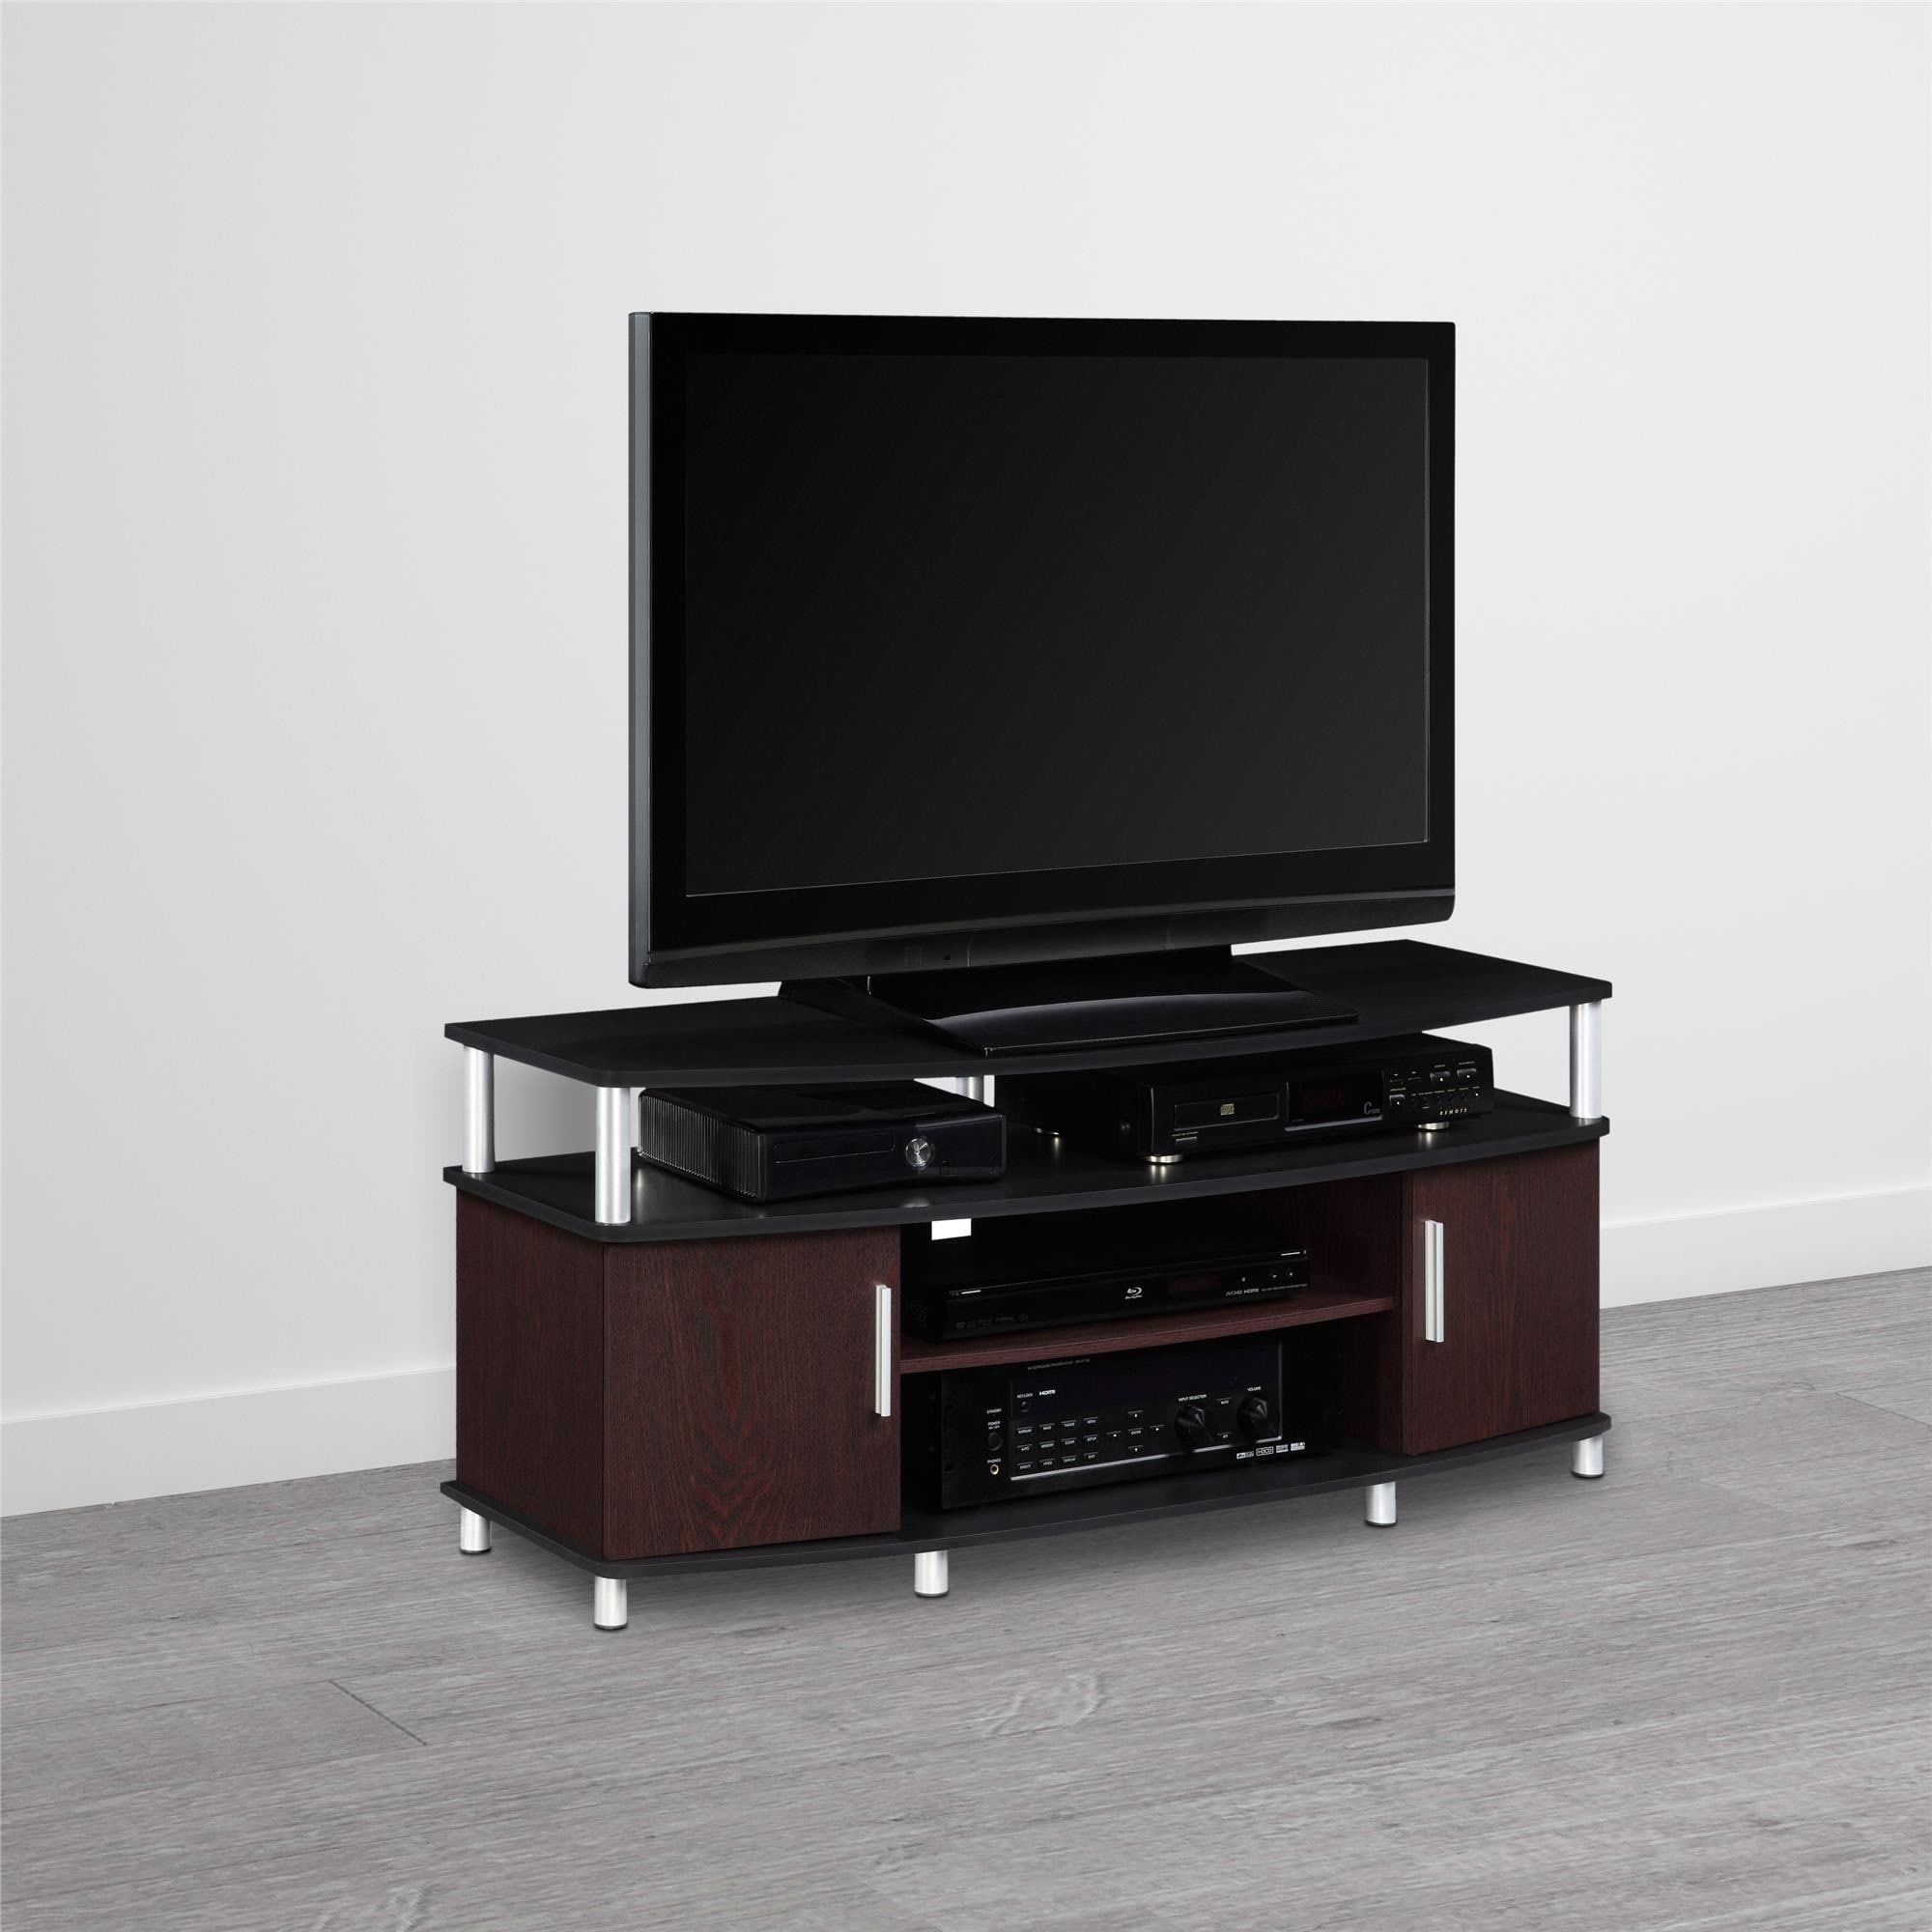 shop avenue greene ford cherry black 50 inch tv stand free shipping on orders over 45. Black Bedroom Furniture Sets. Home Design Ideas